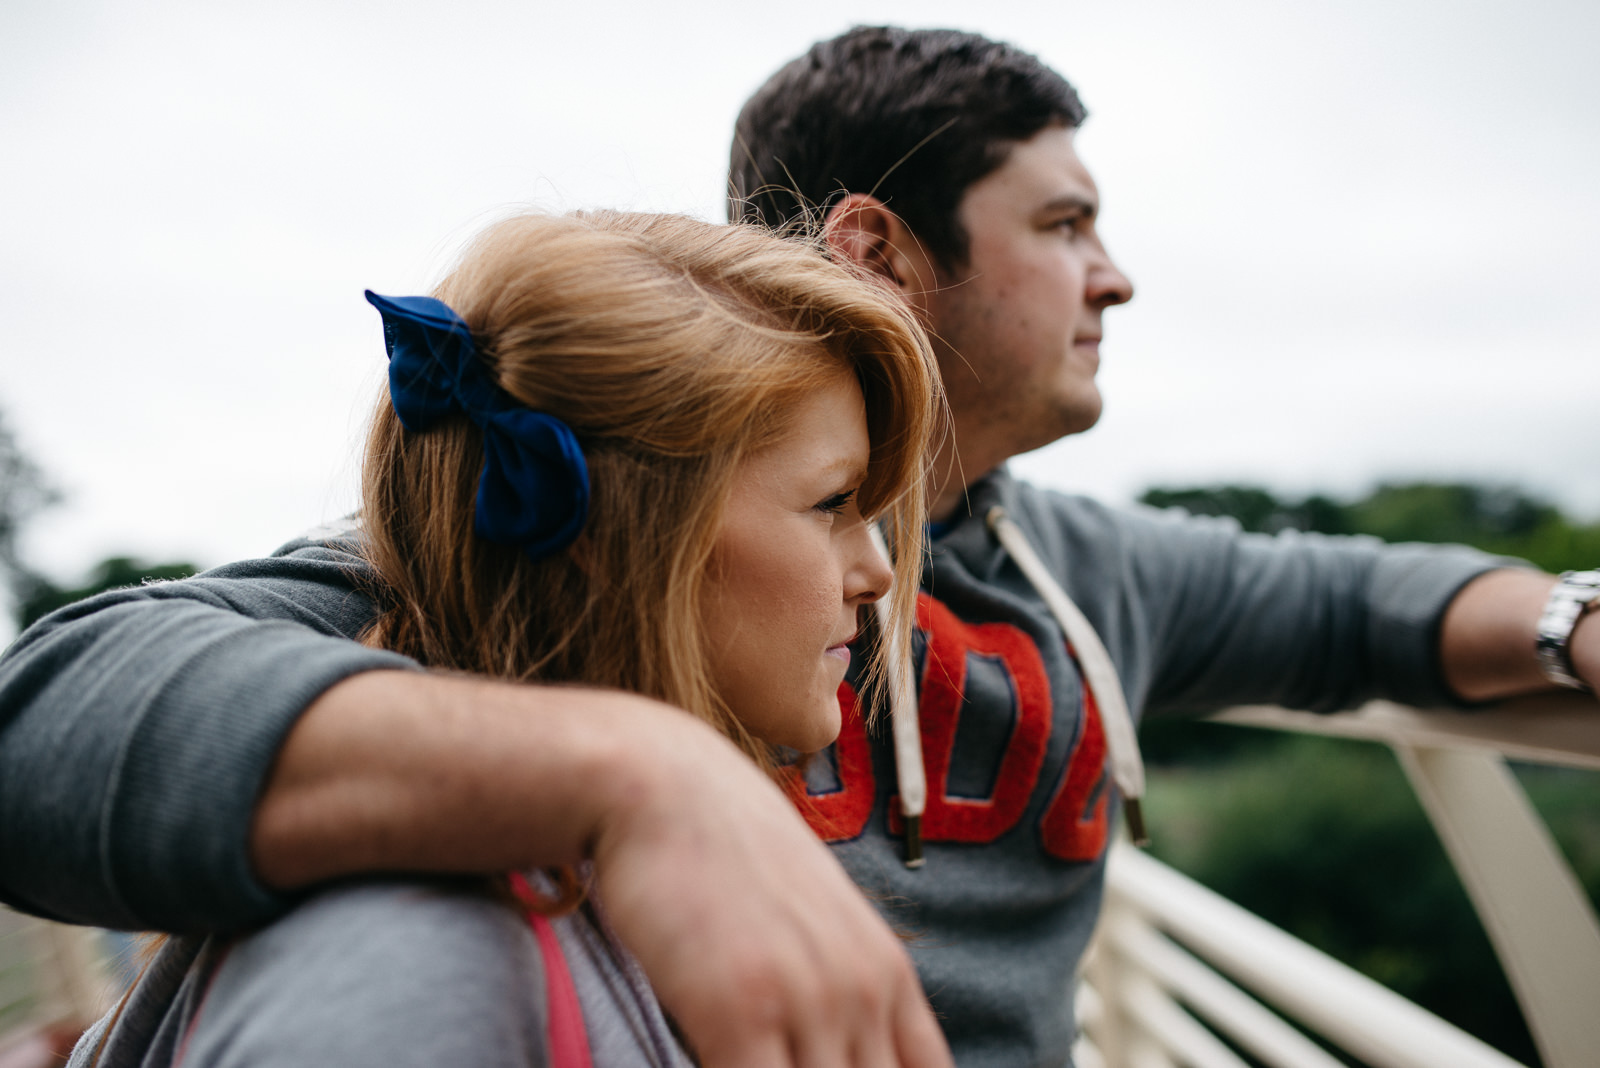 Jo & Lloyd looking along the River during their alternative engagement session